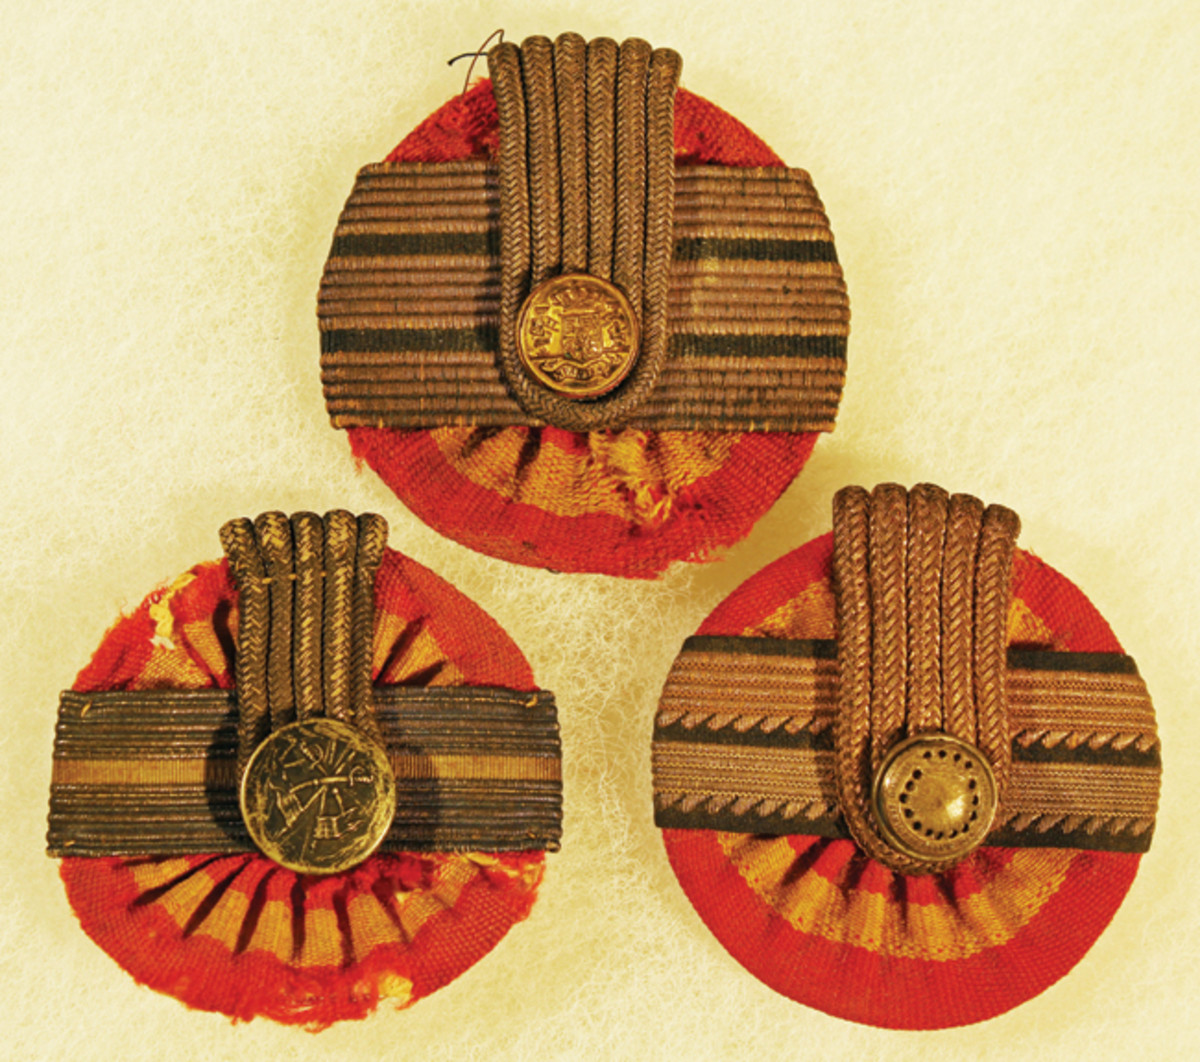 Officer's Cockades: Top: Infantry Captain. Bottom: Cavalry 1st Lieutenant, Military Administration 2nd Class Official. Note the serrated edge on this non-combatant branch braid, a feature also found on medical officer's rank braid.